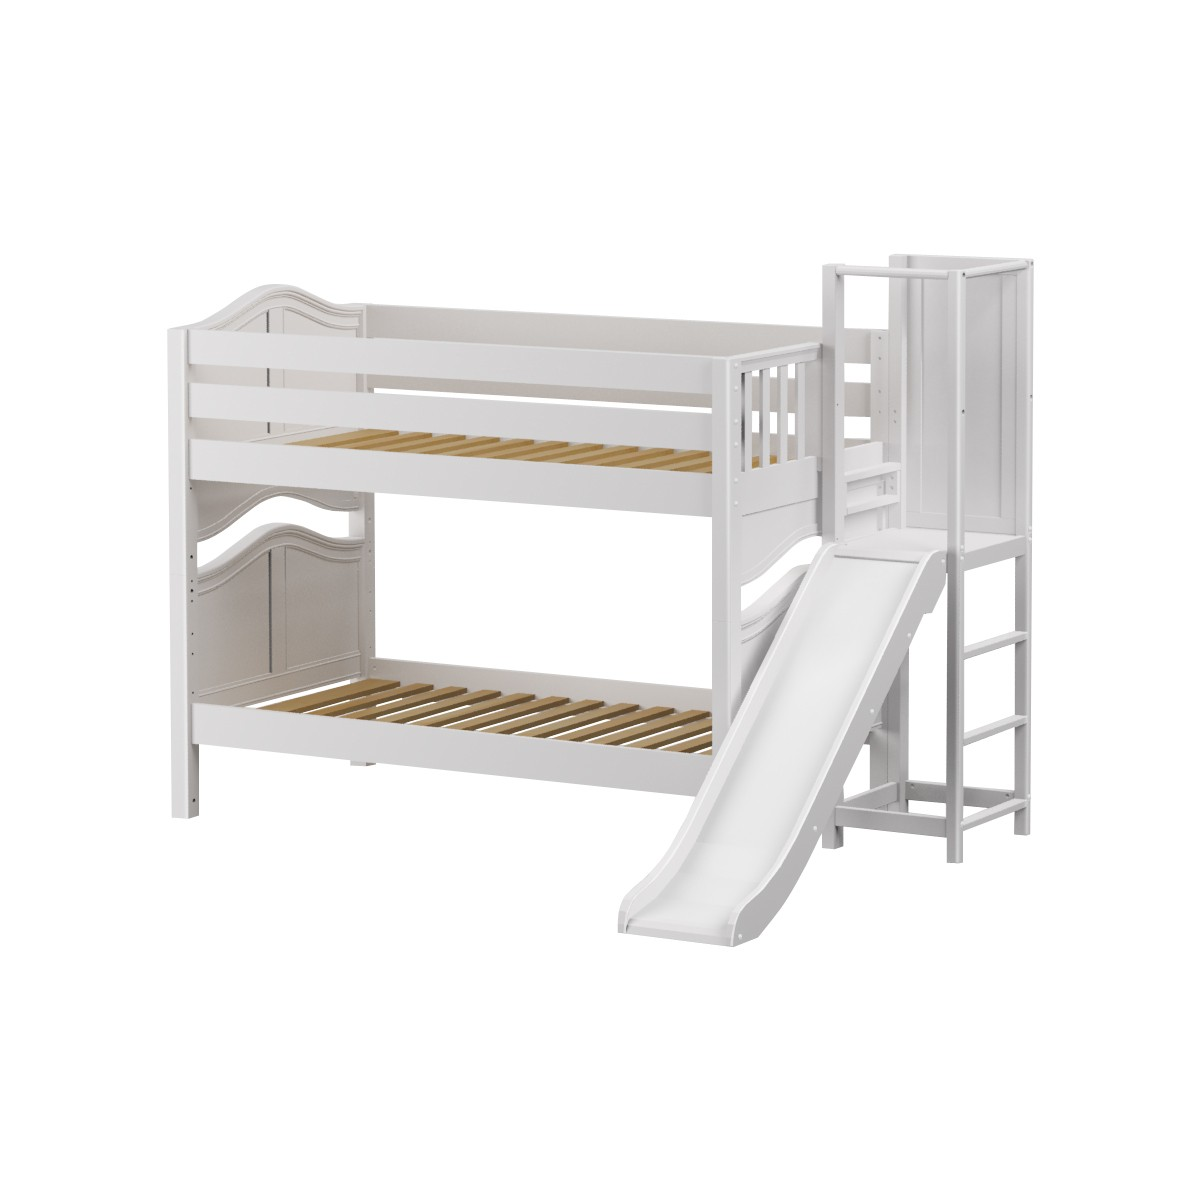 Picture of: Abra Low Bunk Bed By Maxtrix Kids White Curved Twin Slide